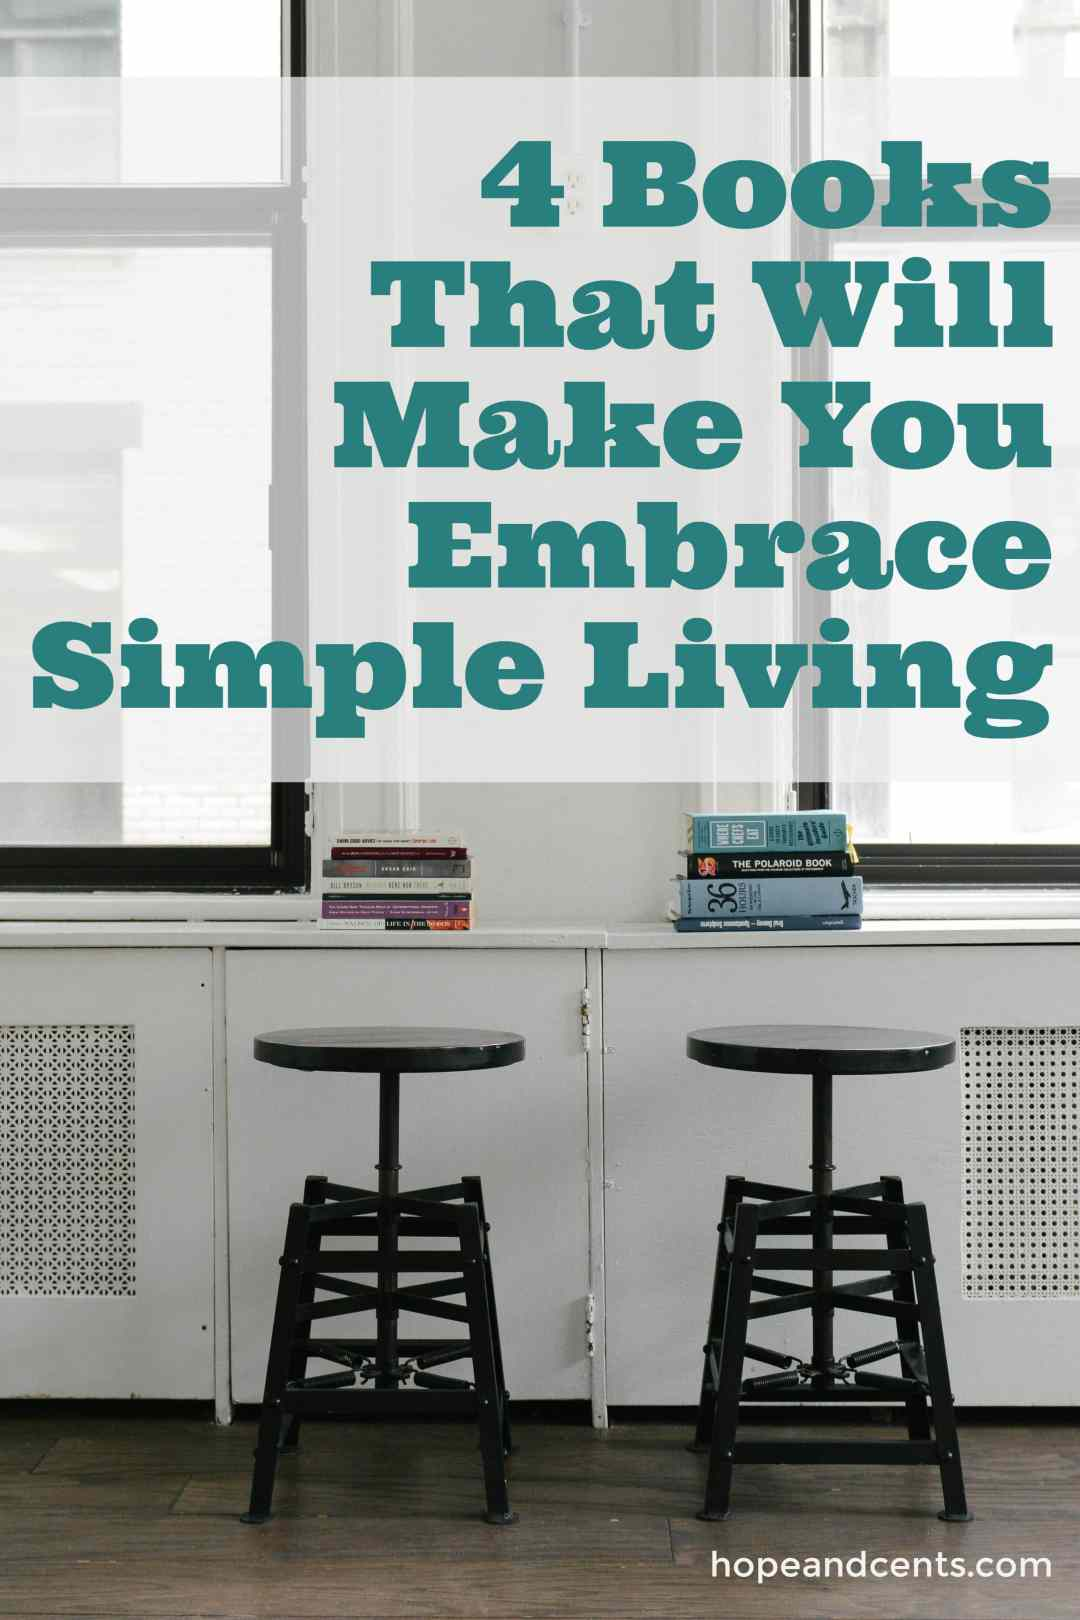 Are you looking to simplify? Are you intrigued by minimalism? These books will inspire and encourage you to find your path to simple living. #simpleliving #minimalism #minimalist #books